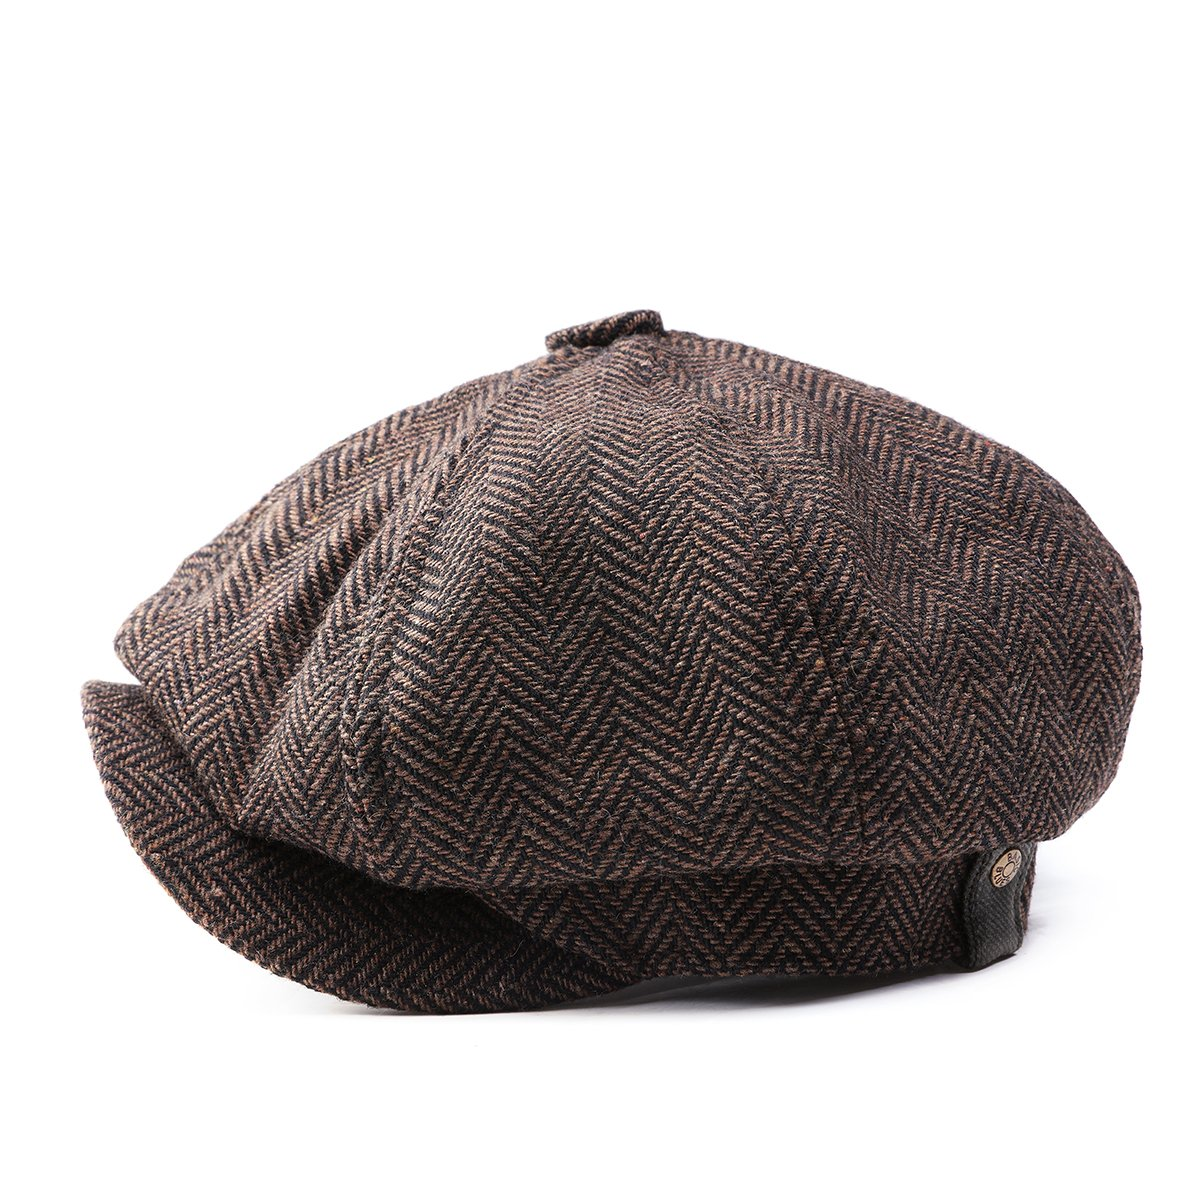 b77a77b3 GESDY Mens Vintage Newsboy Ivy Cap Flat Octagonal Golf Driving Hat Beret  Cabbie Gatsby at Amazon Men's Clothing store: